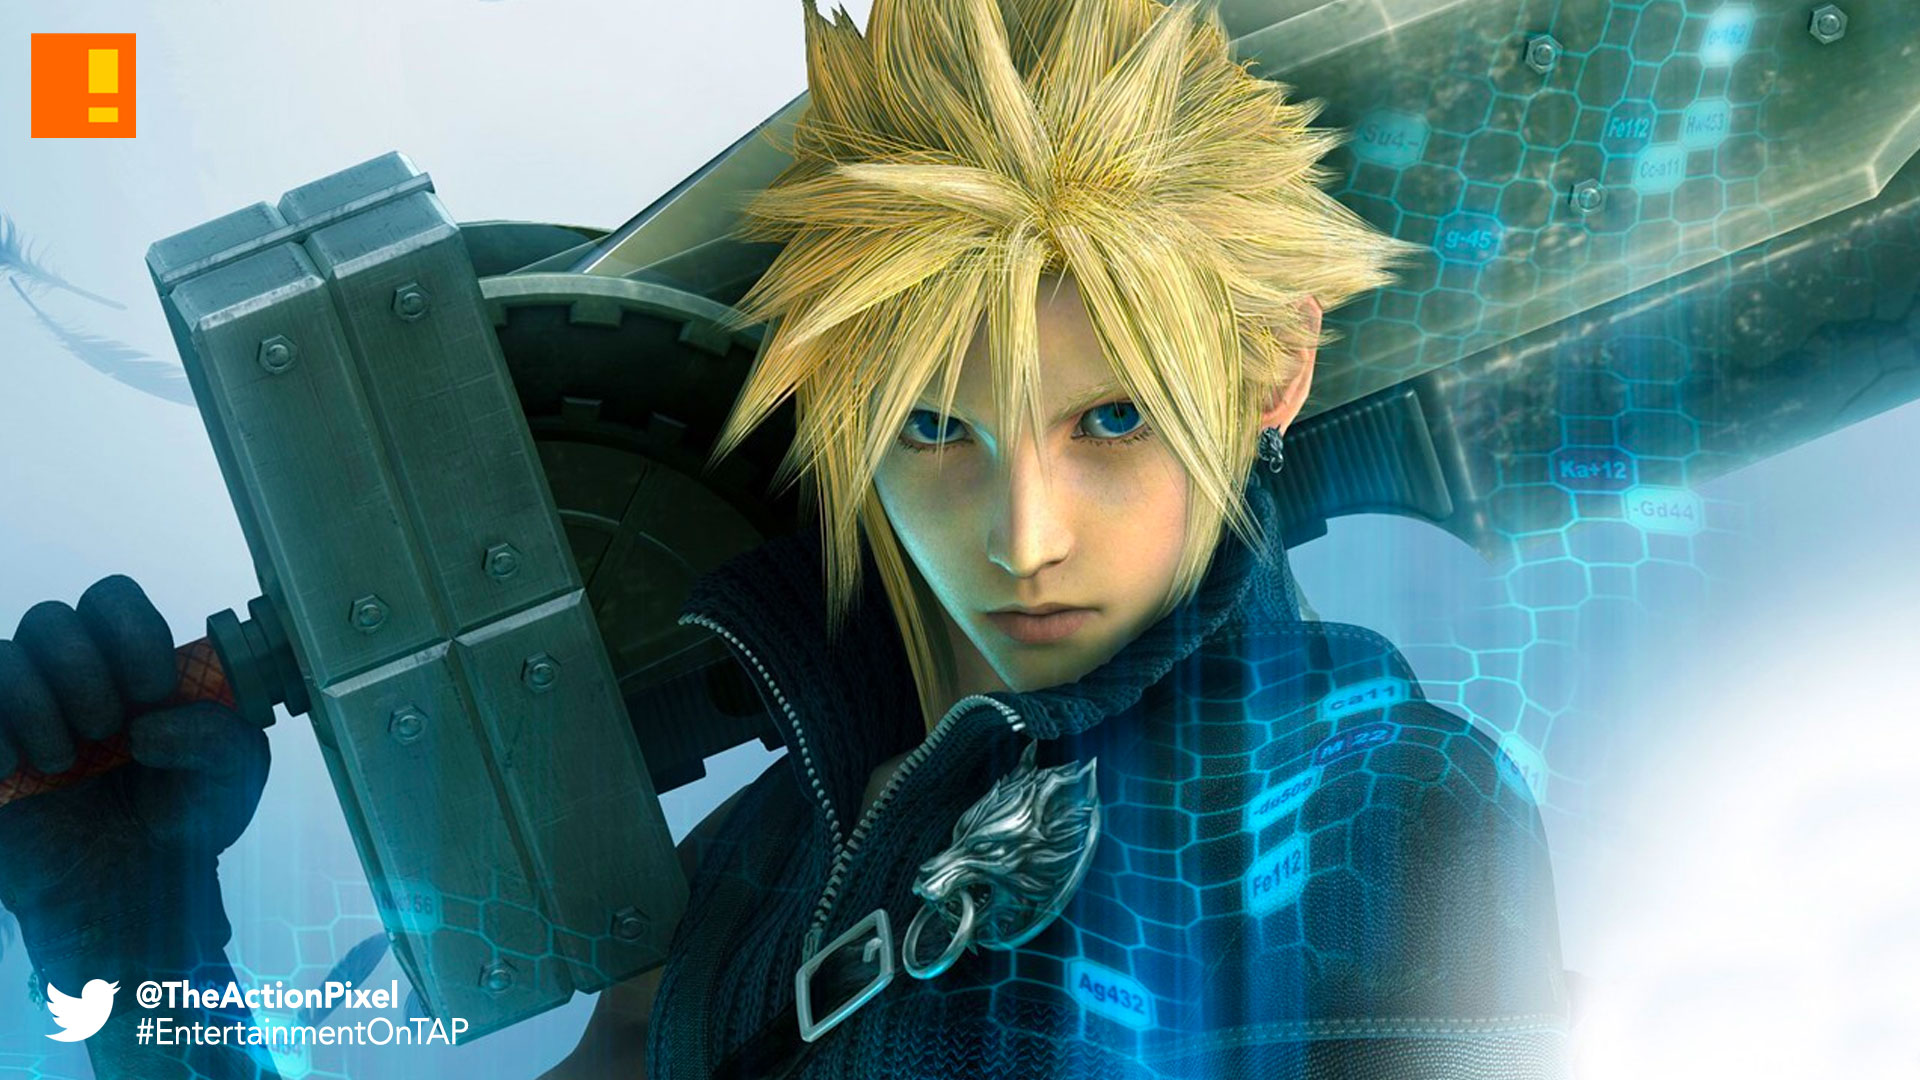 CLOUD, FINAL FANTASY 7 REMAKE, FINAL FANTASY 7, REMAKE, FINAL FANTASY, FINAL FANTASY VII, SQUARE ENIX, THE ACTION PIXEL, ENTERTAINMENT ON TAP,